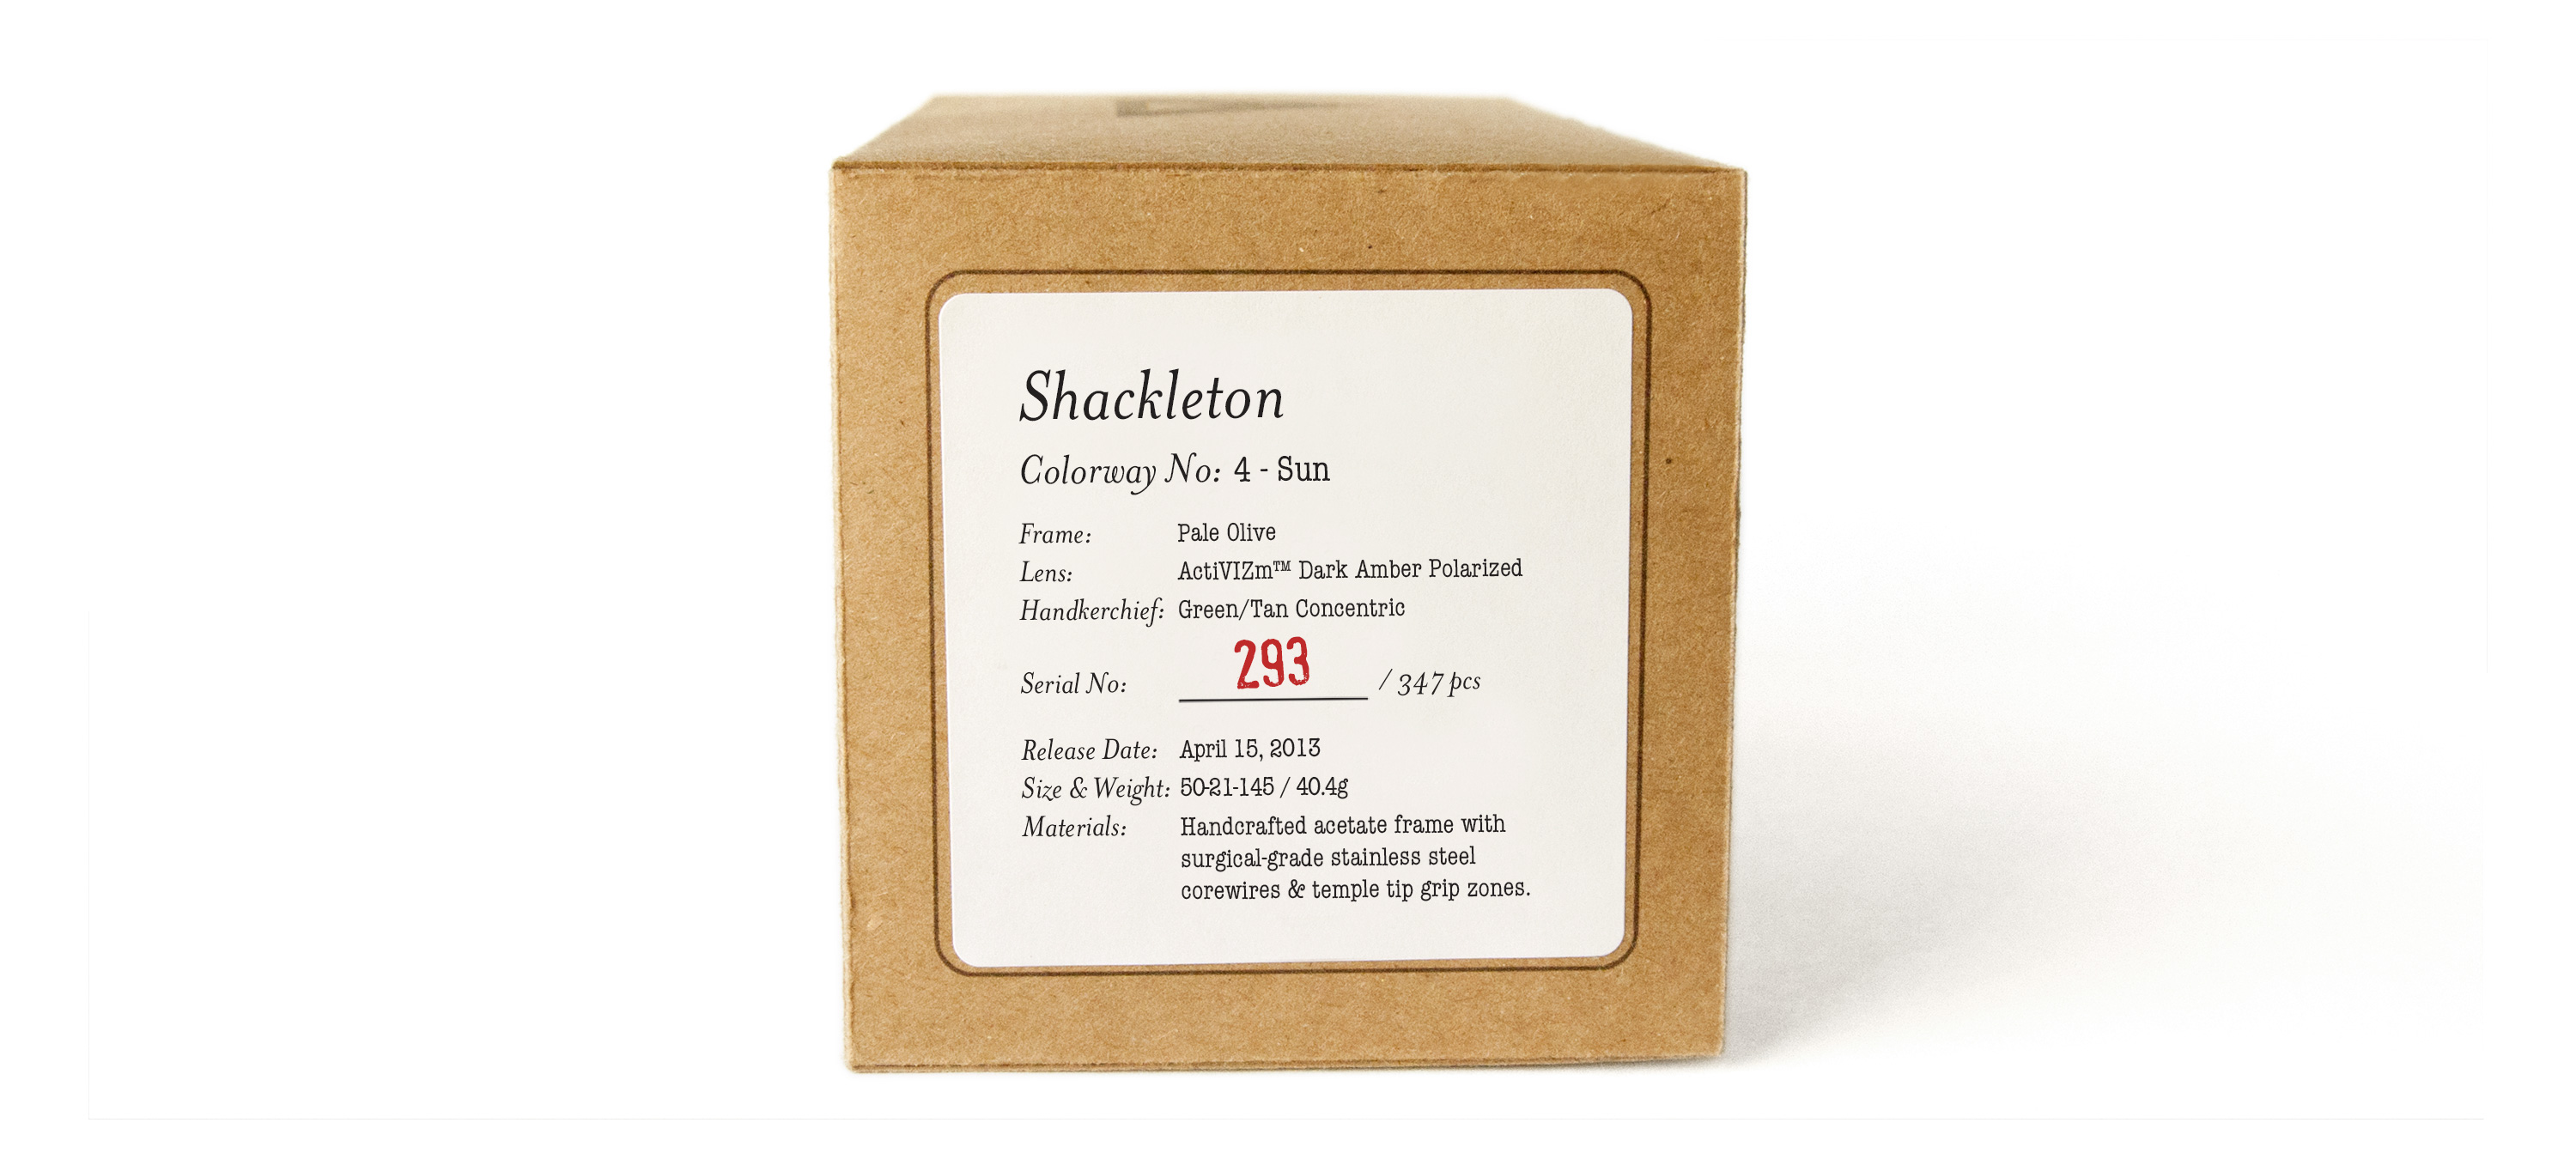 outer_pkg_label_shackleton_sun_04